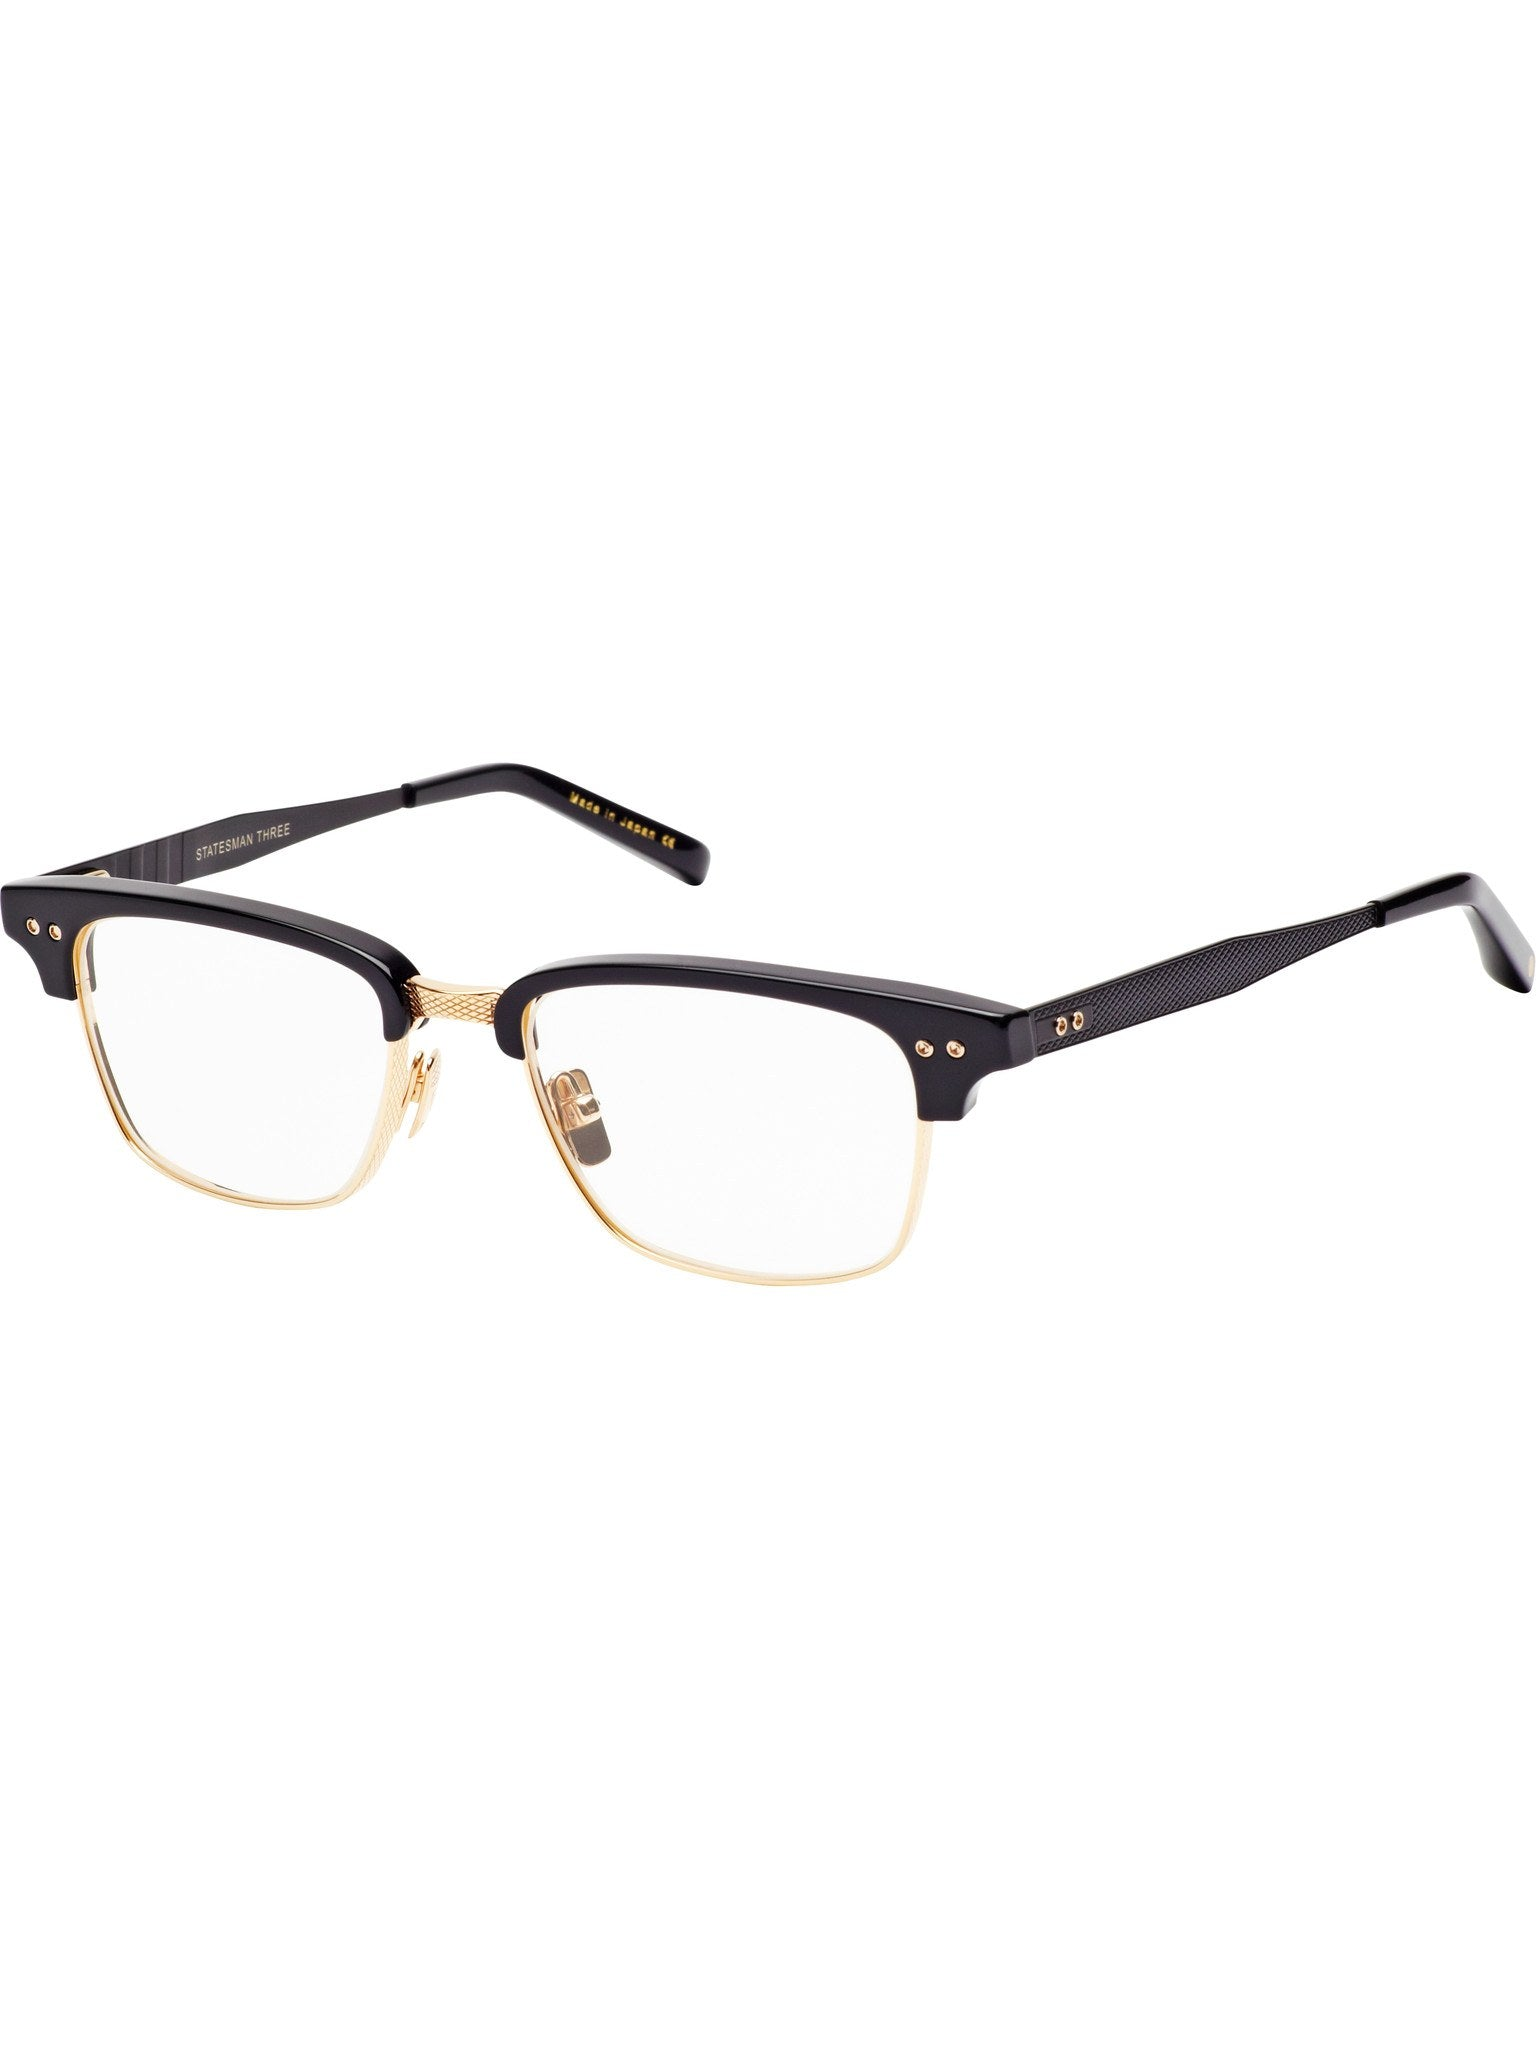 23755cba897 Optical Frame - Dita Statesman Three DRX-2064B Glasses